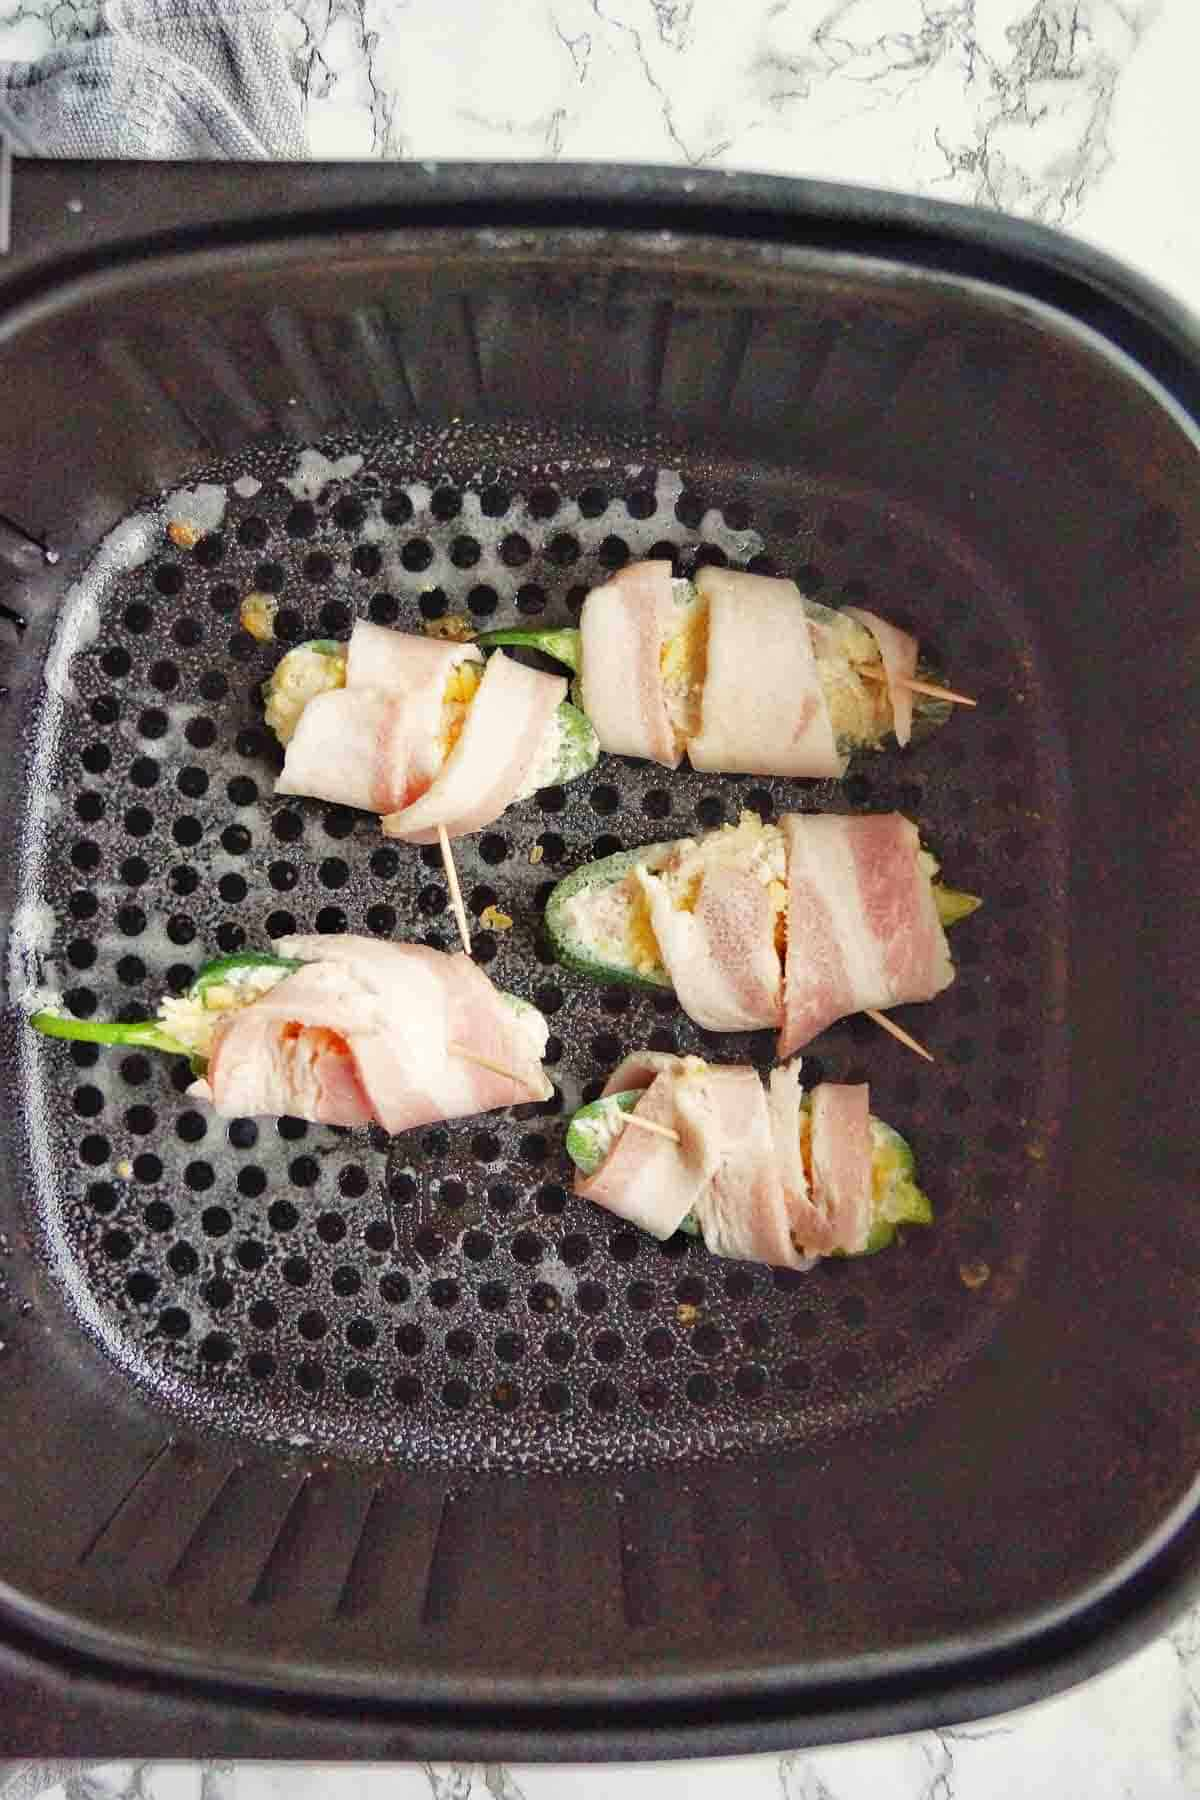 Bacon Wrapped Stuffed jalapenos in air fryer basket